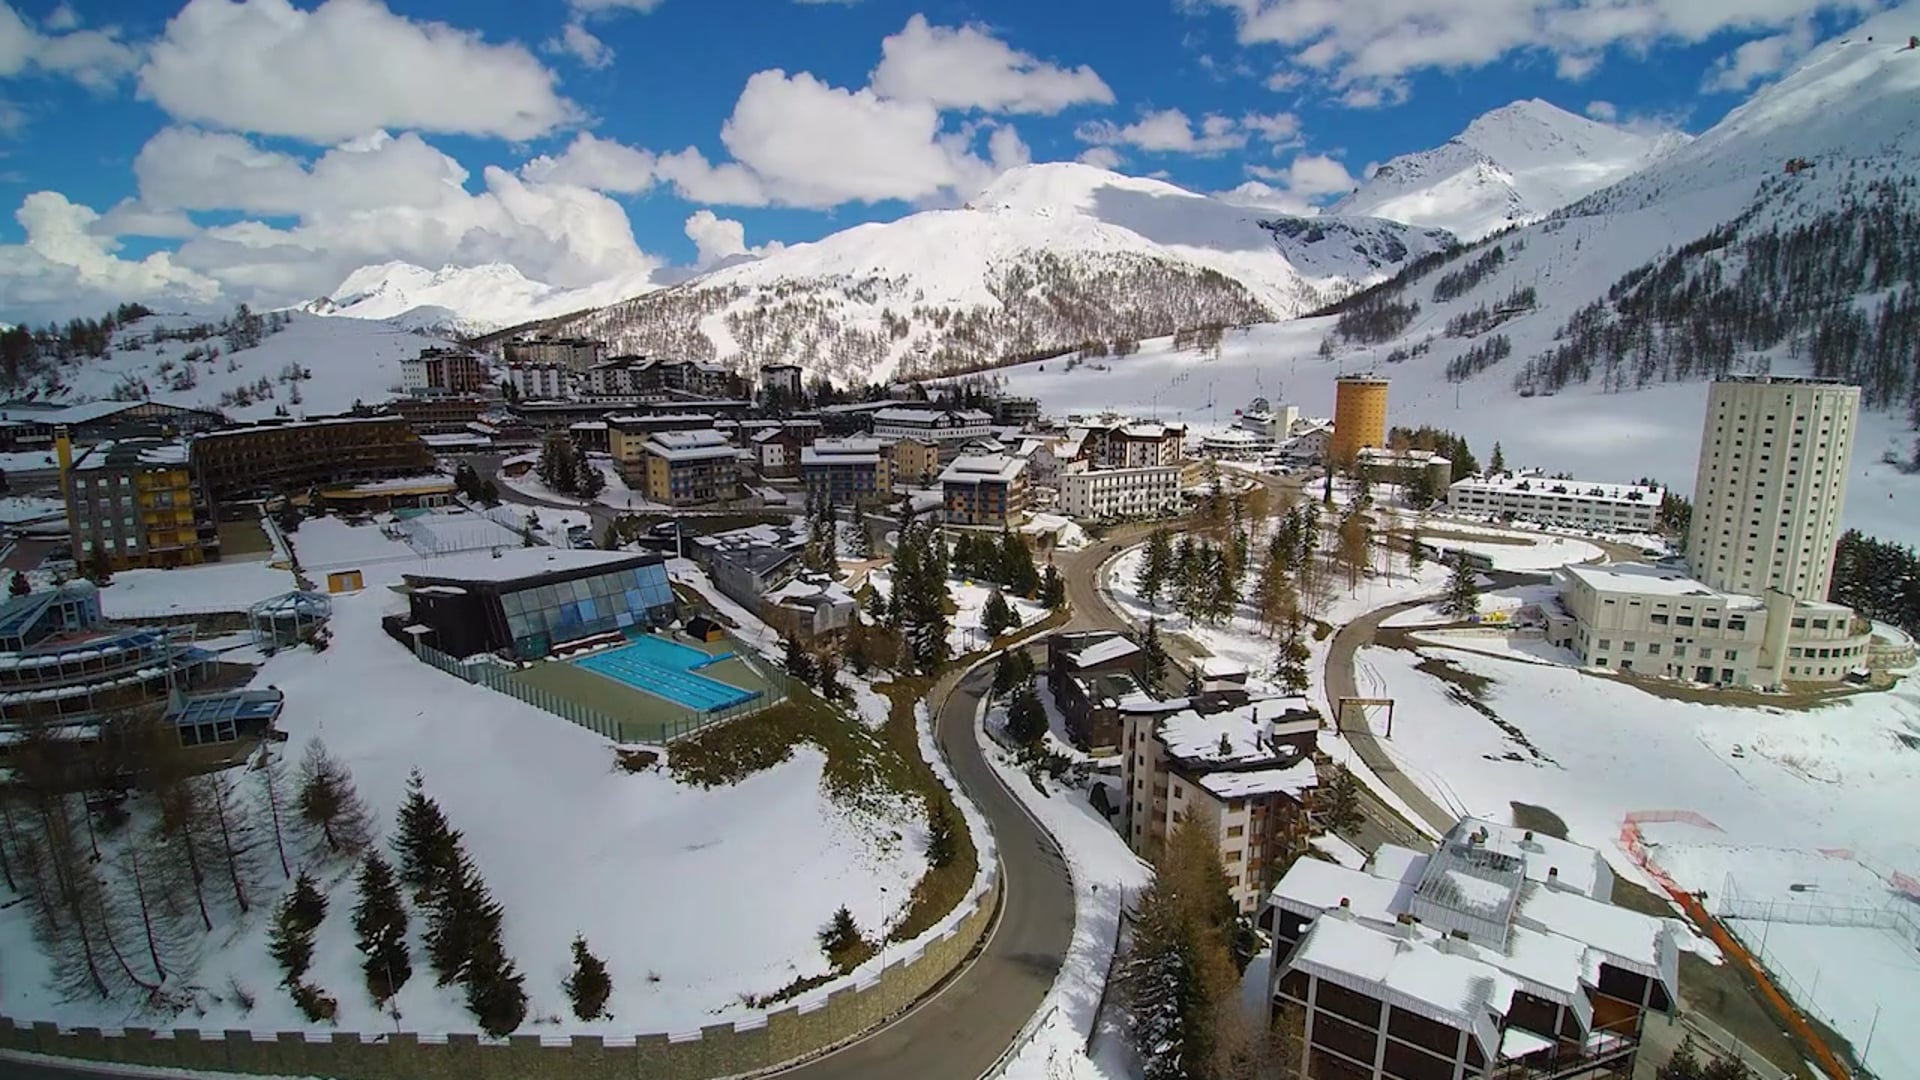 Welcome Winter - SESTRIERE 2020/21